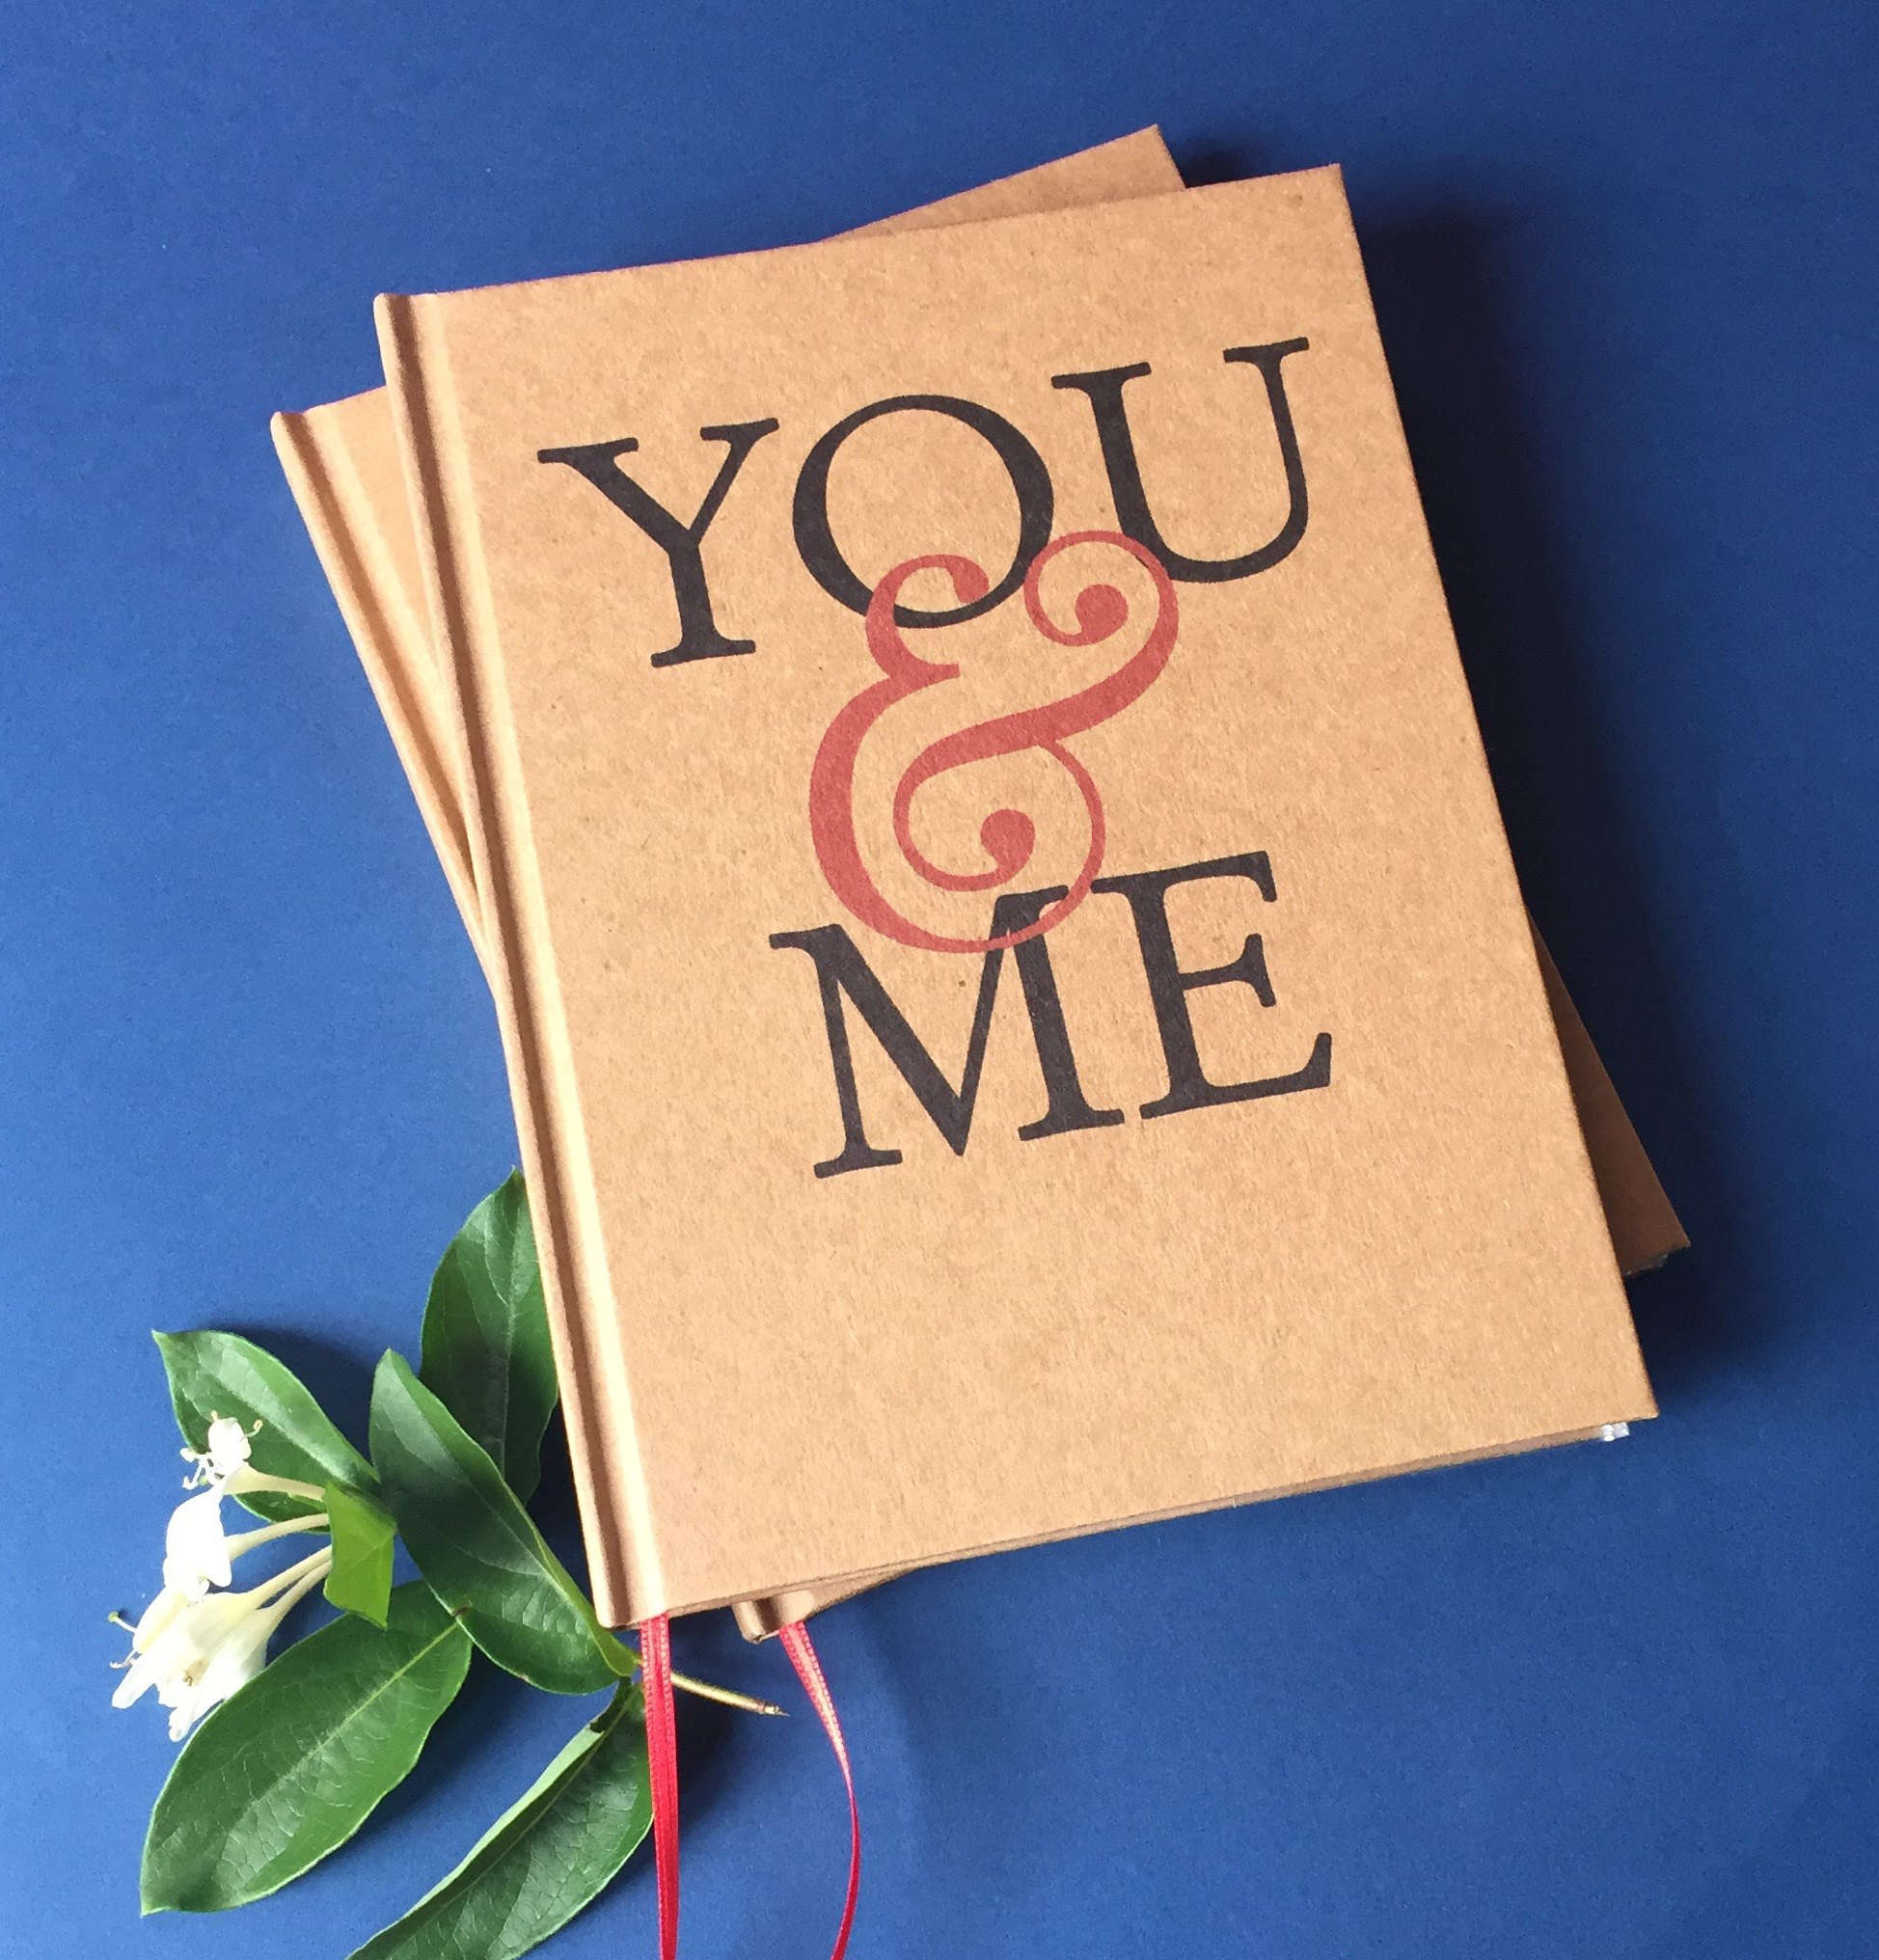 Free Shipping · YOU & ME · Wedding Anniversary Gift Journal · Paper Anniversary Keepsake - Transient Books